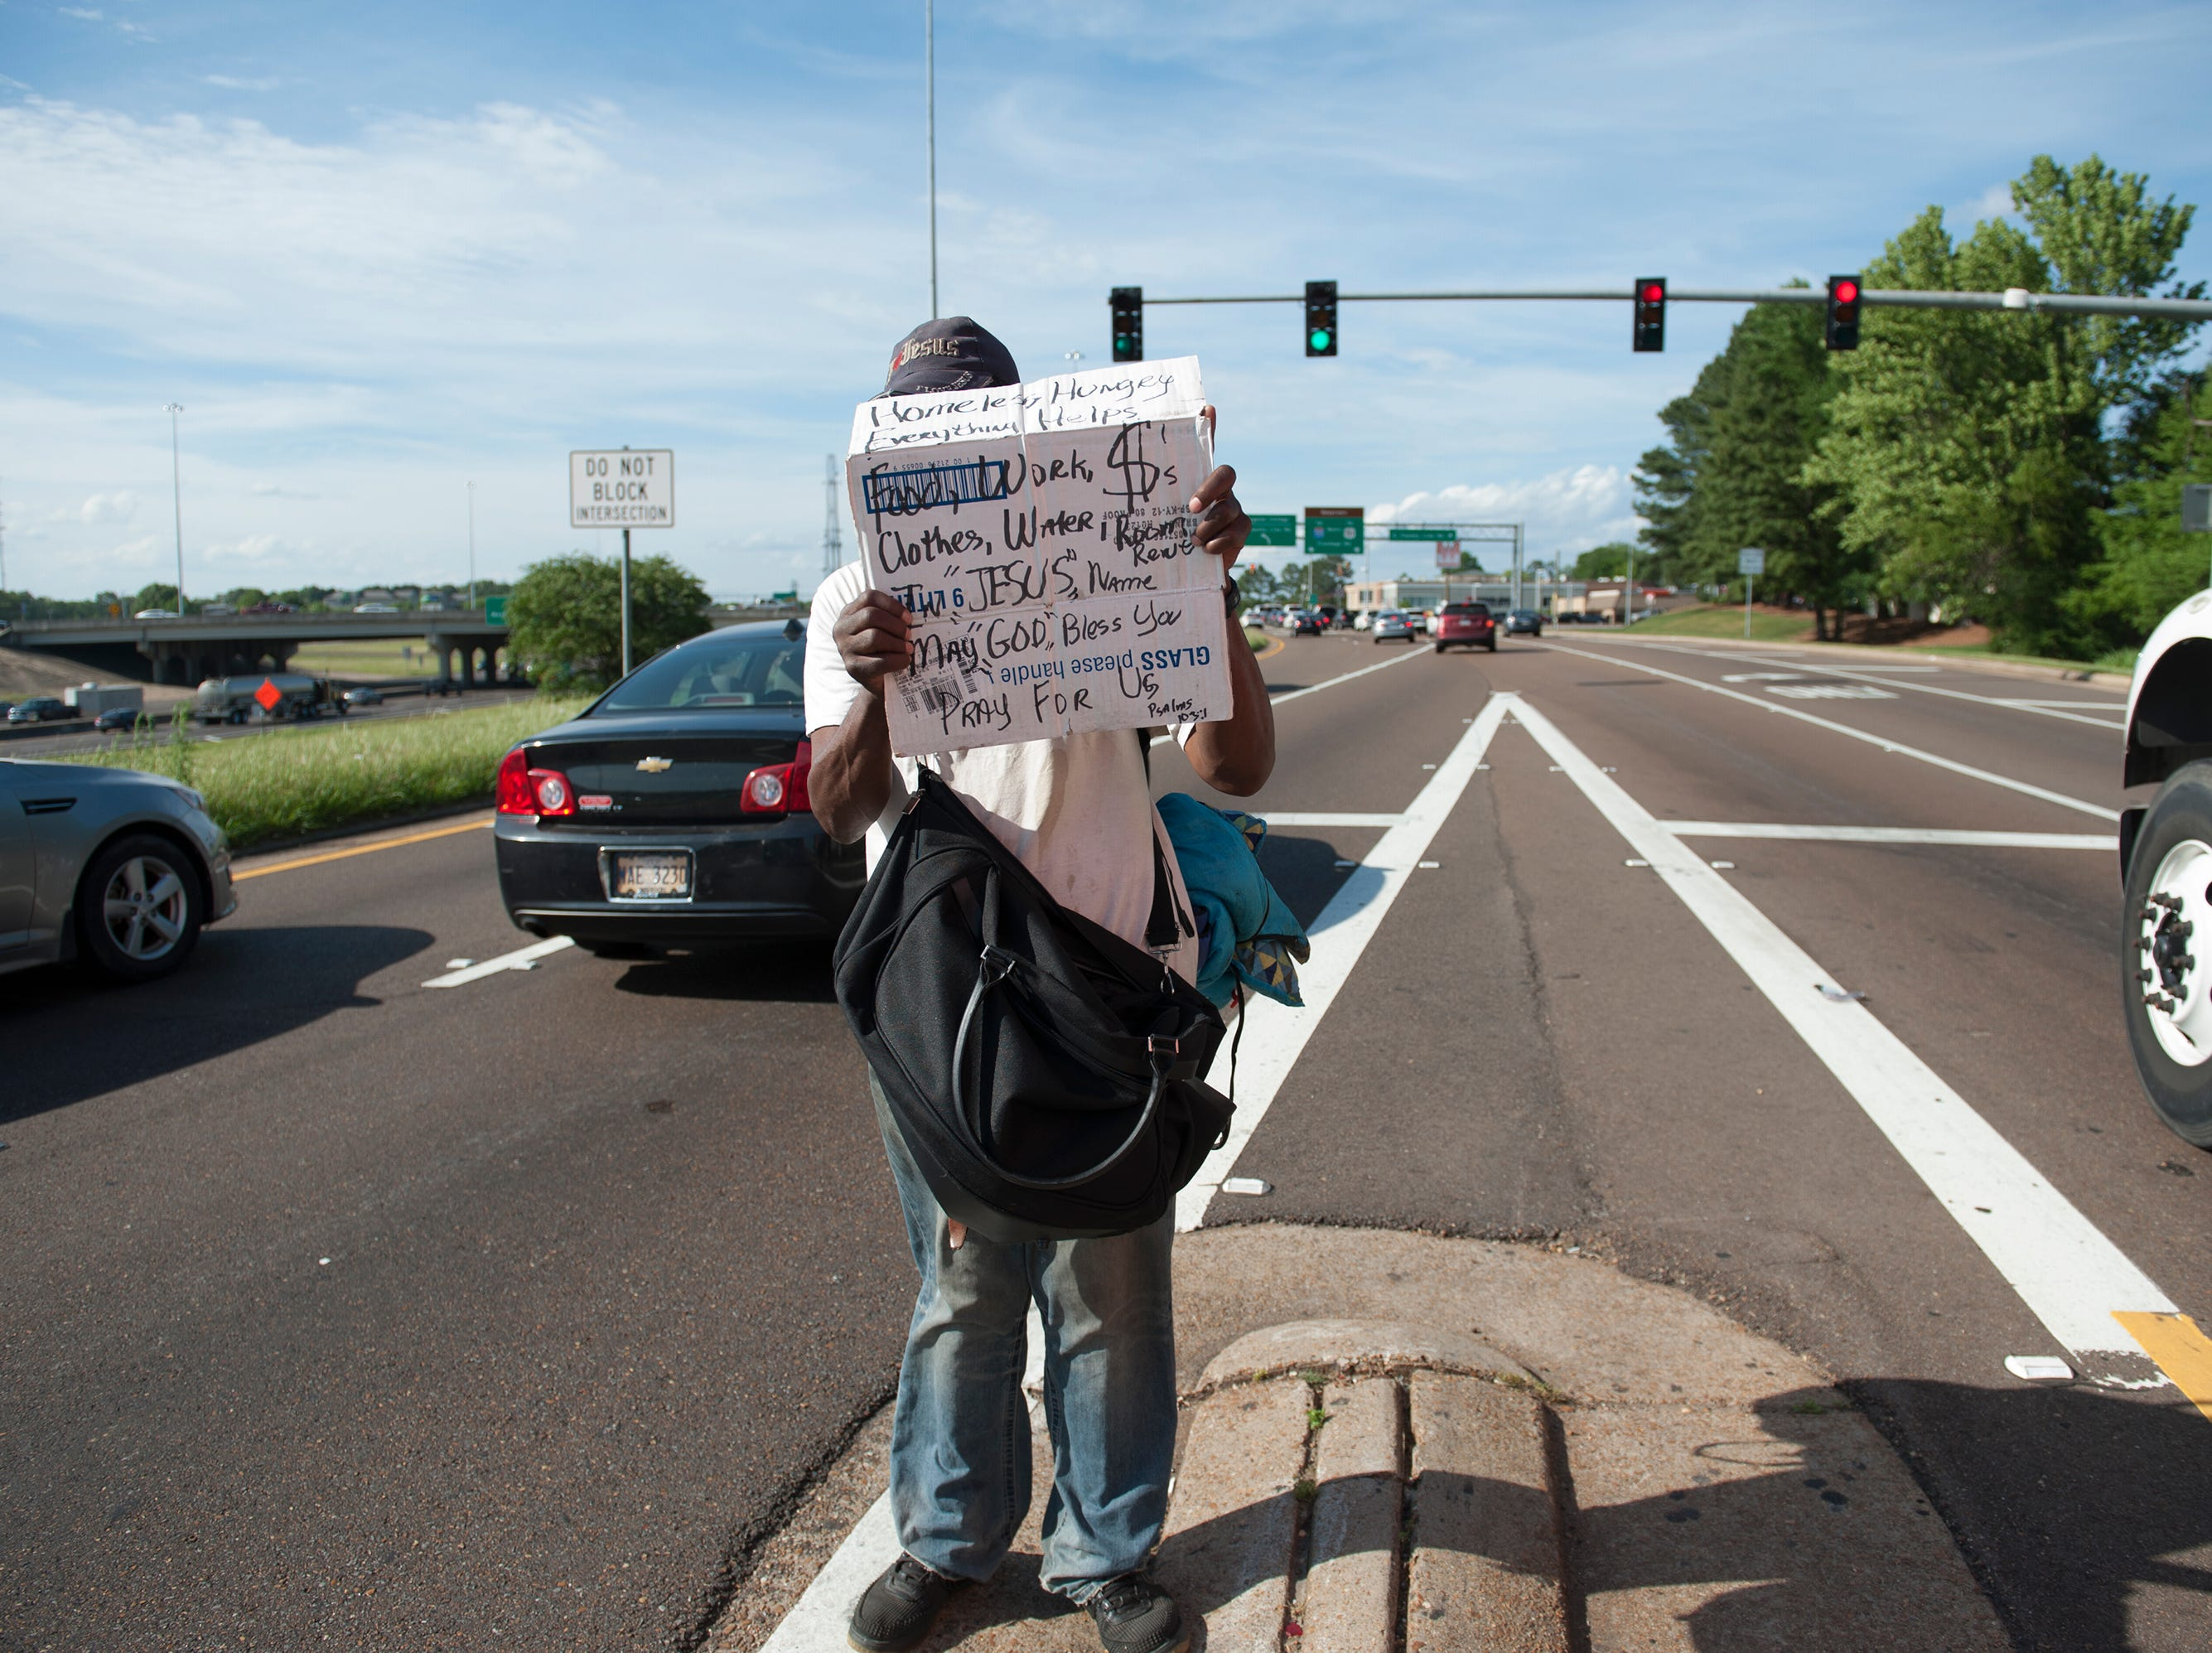 Chuck has had his spot on I-55 East Frontage Road just south of County Line Road for 10 years. He averages $50 a day through the generosity of people and has a hotel room where he sleeps in each night. This is what he does for a living.